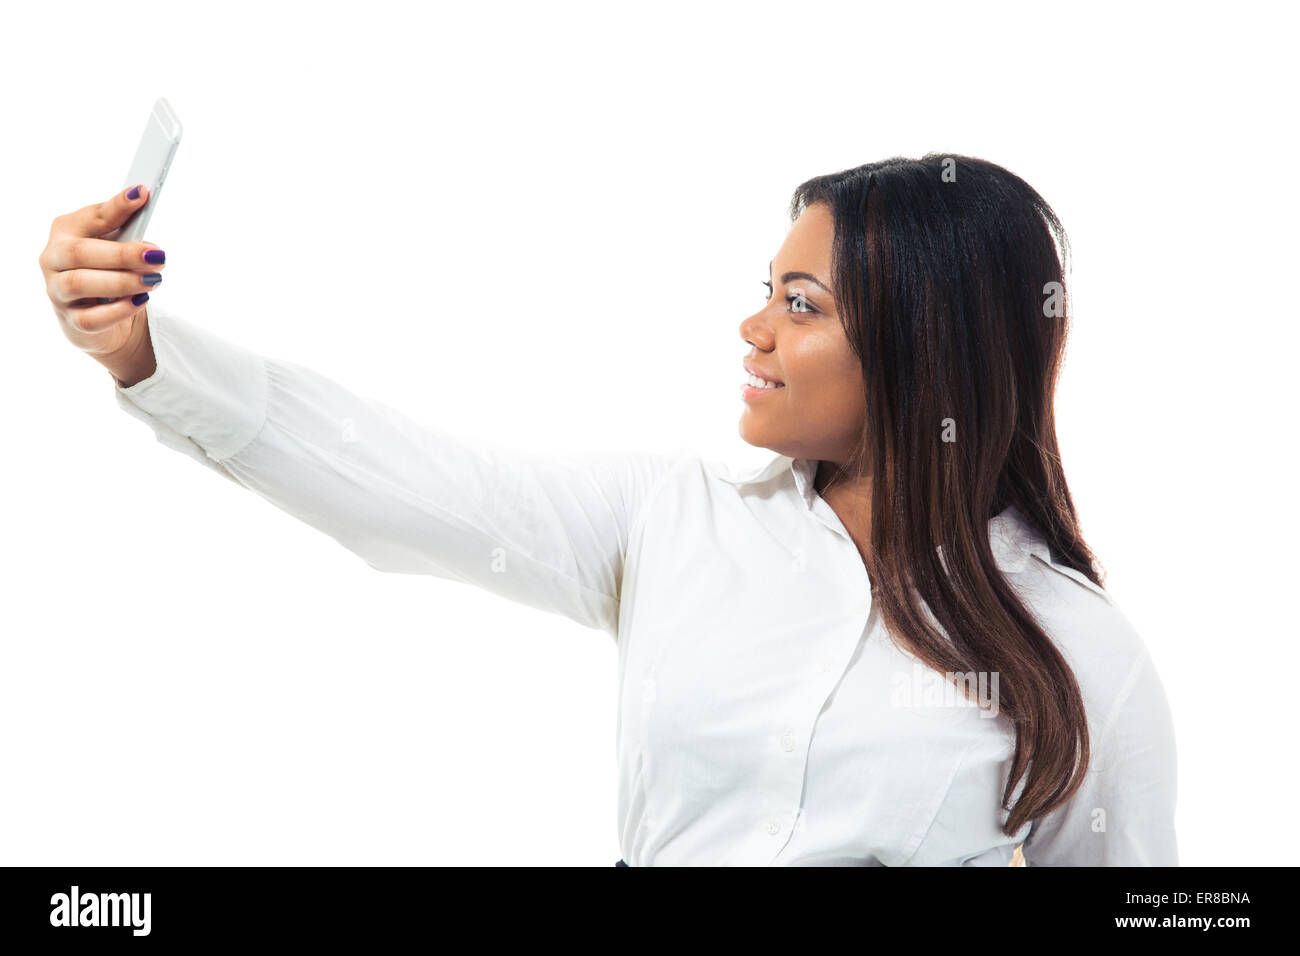 Happy afro american businesswoman making selfie photo on smartphone isolated on a white background - Stock Image